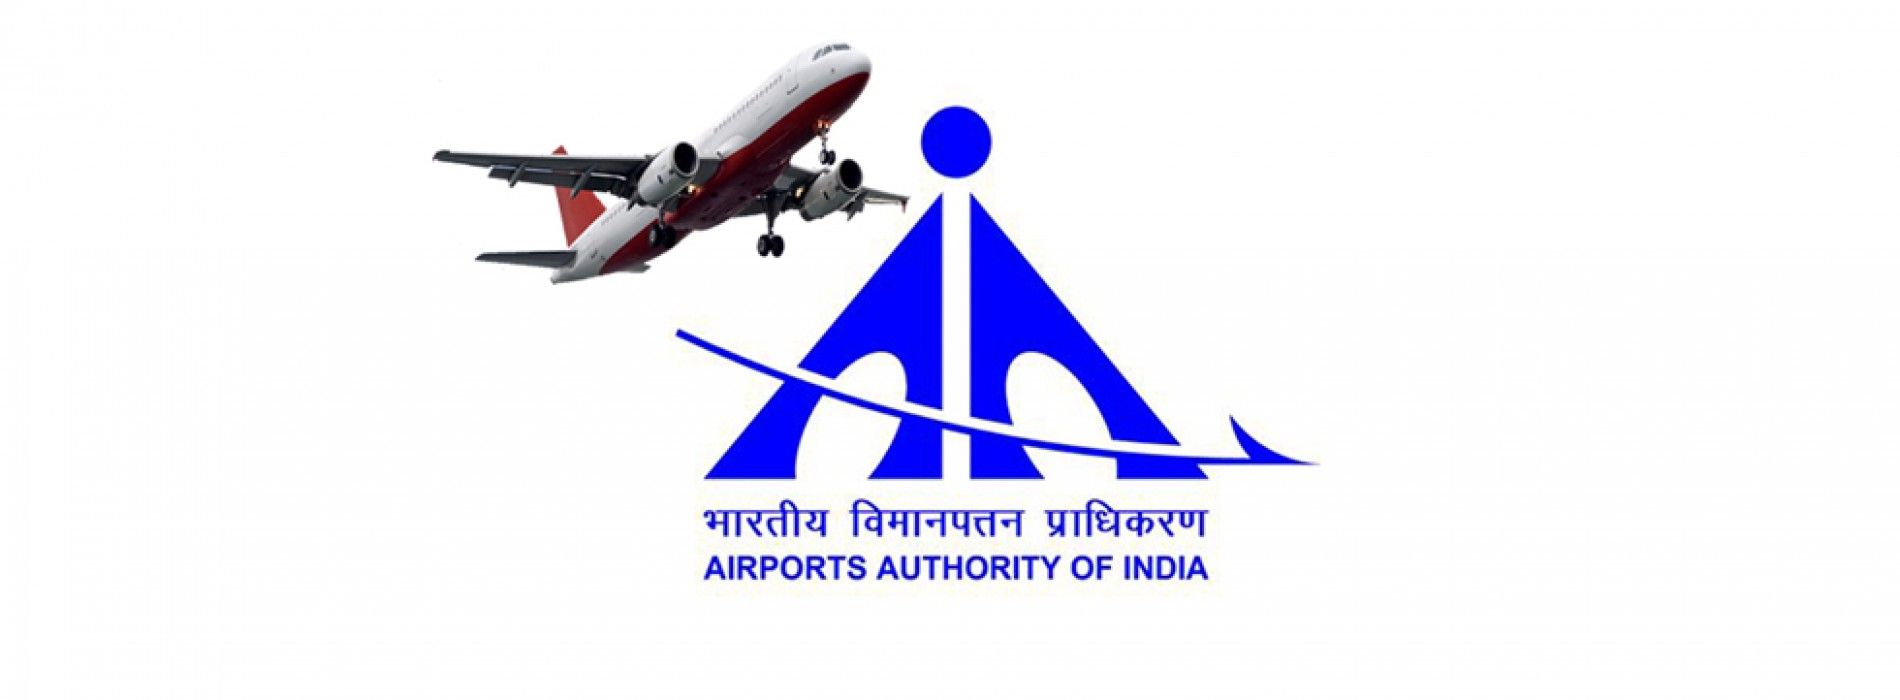 Airports Authority of India (AAI) is hiring 264 Trade Apprentices